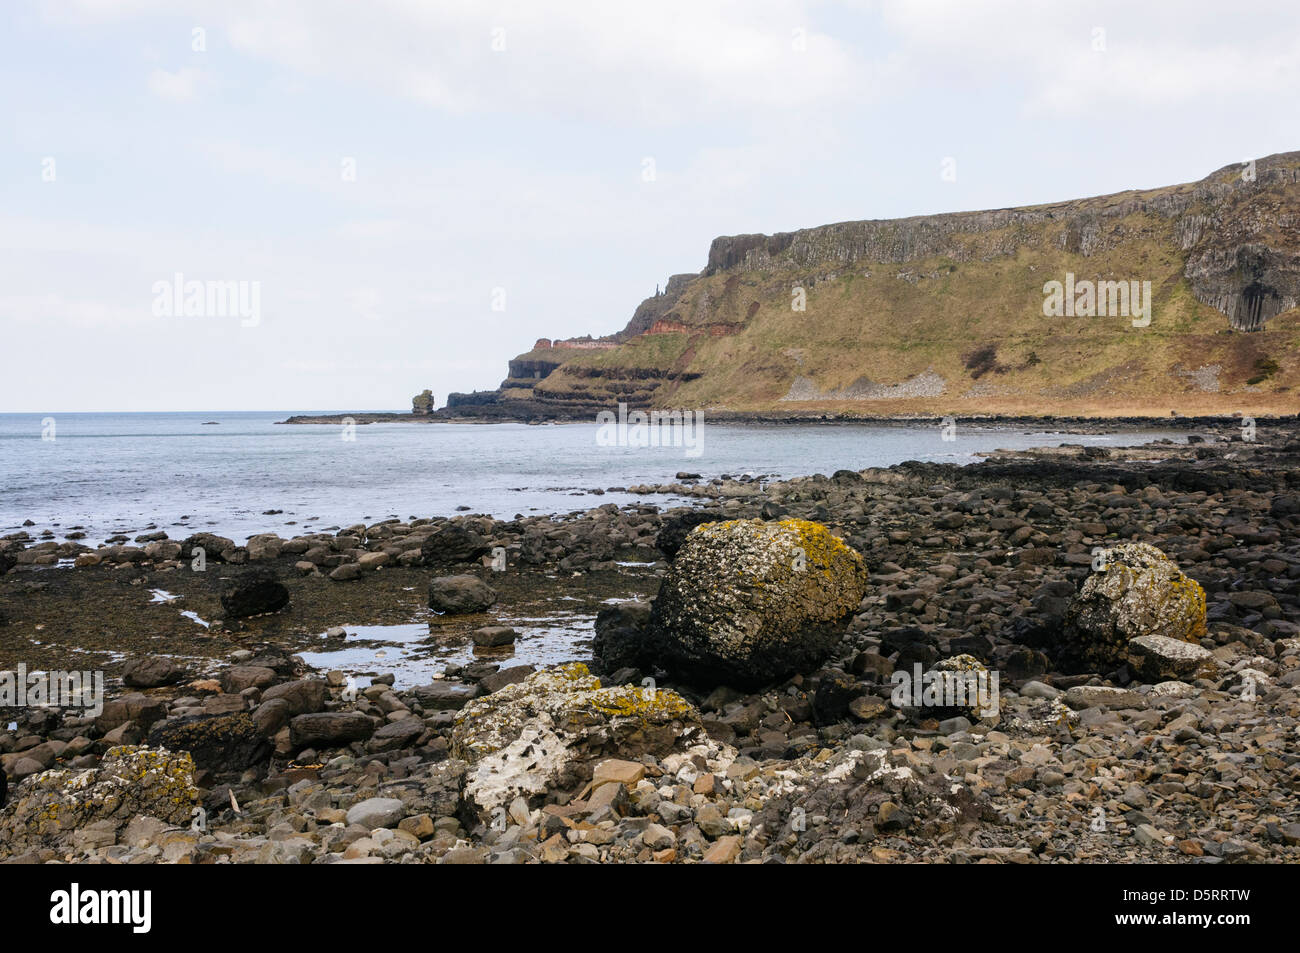 The Amphitheater at the Giant's Causeway Stock Photo